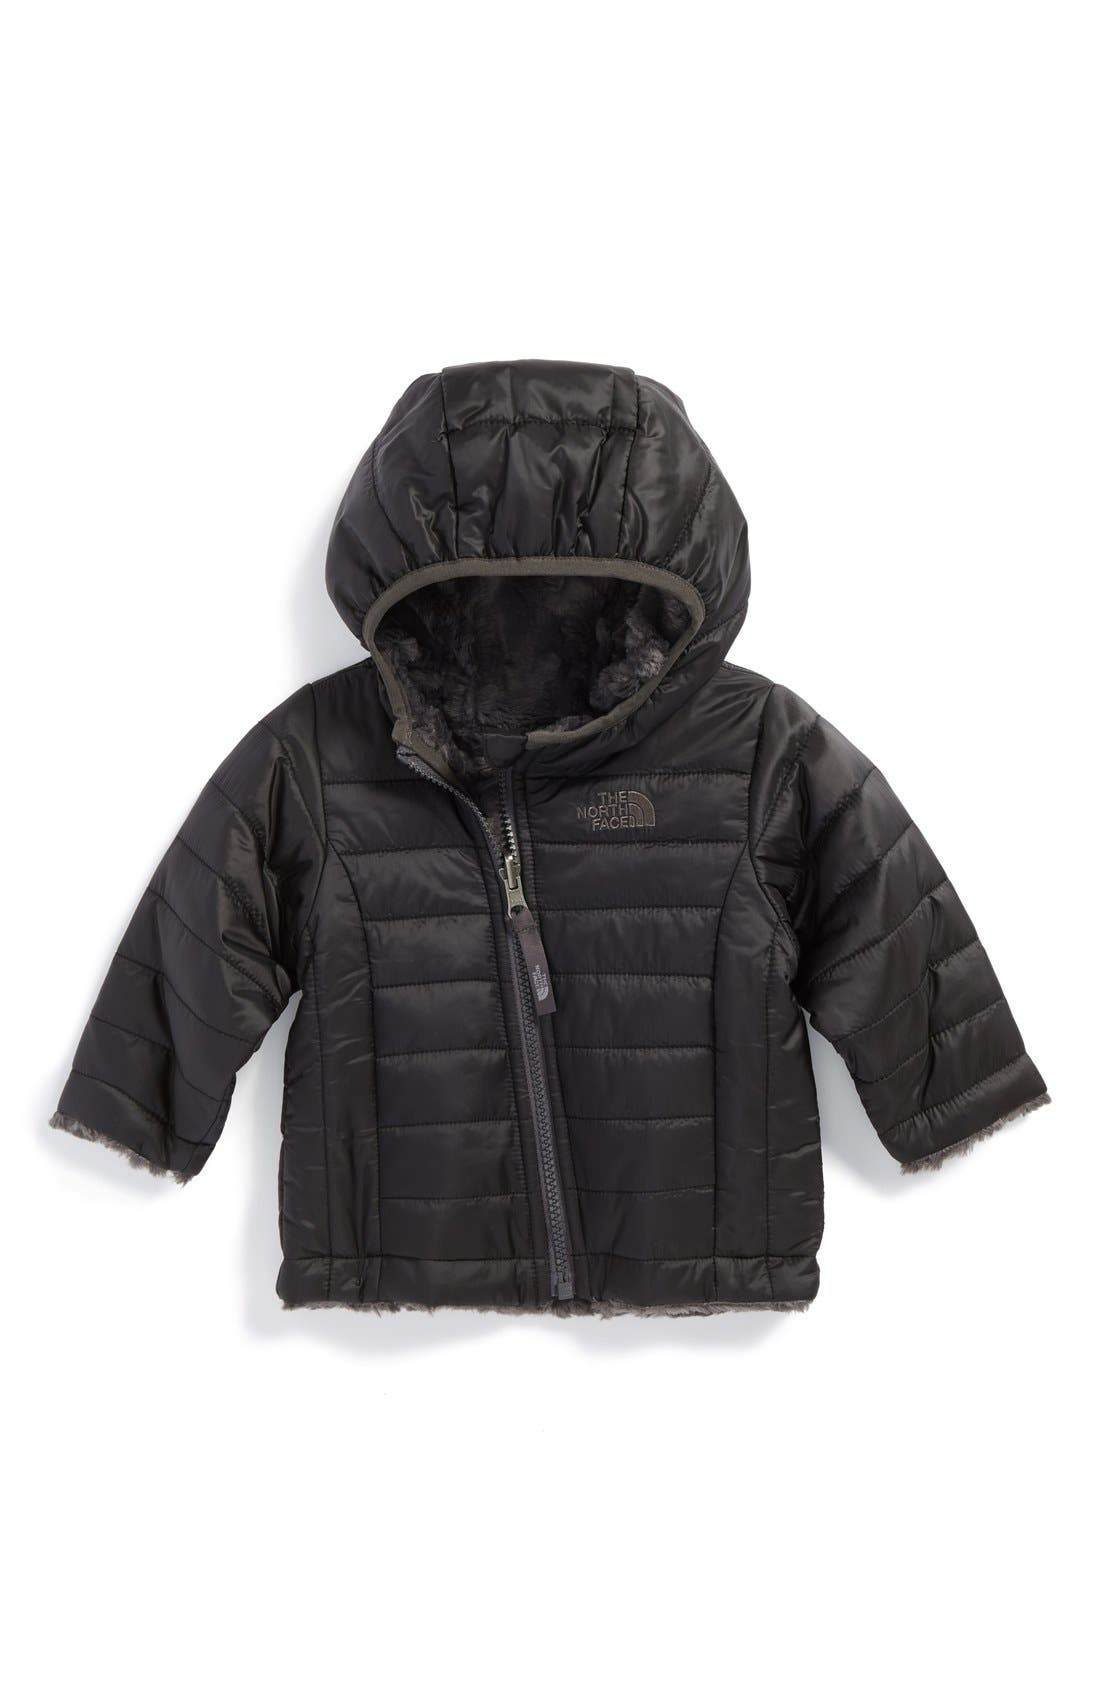 Alternate Image 1 Selected - The North Face 'Mossbud Swirl' Reversible Jacket (Baby)